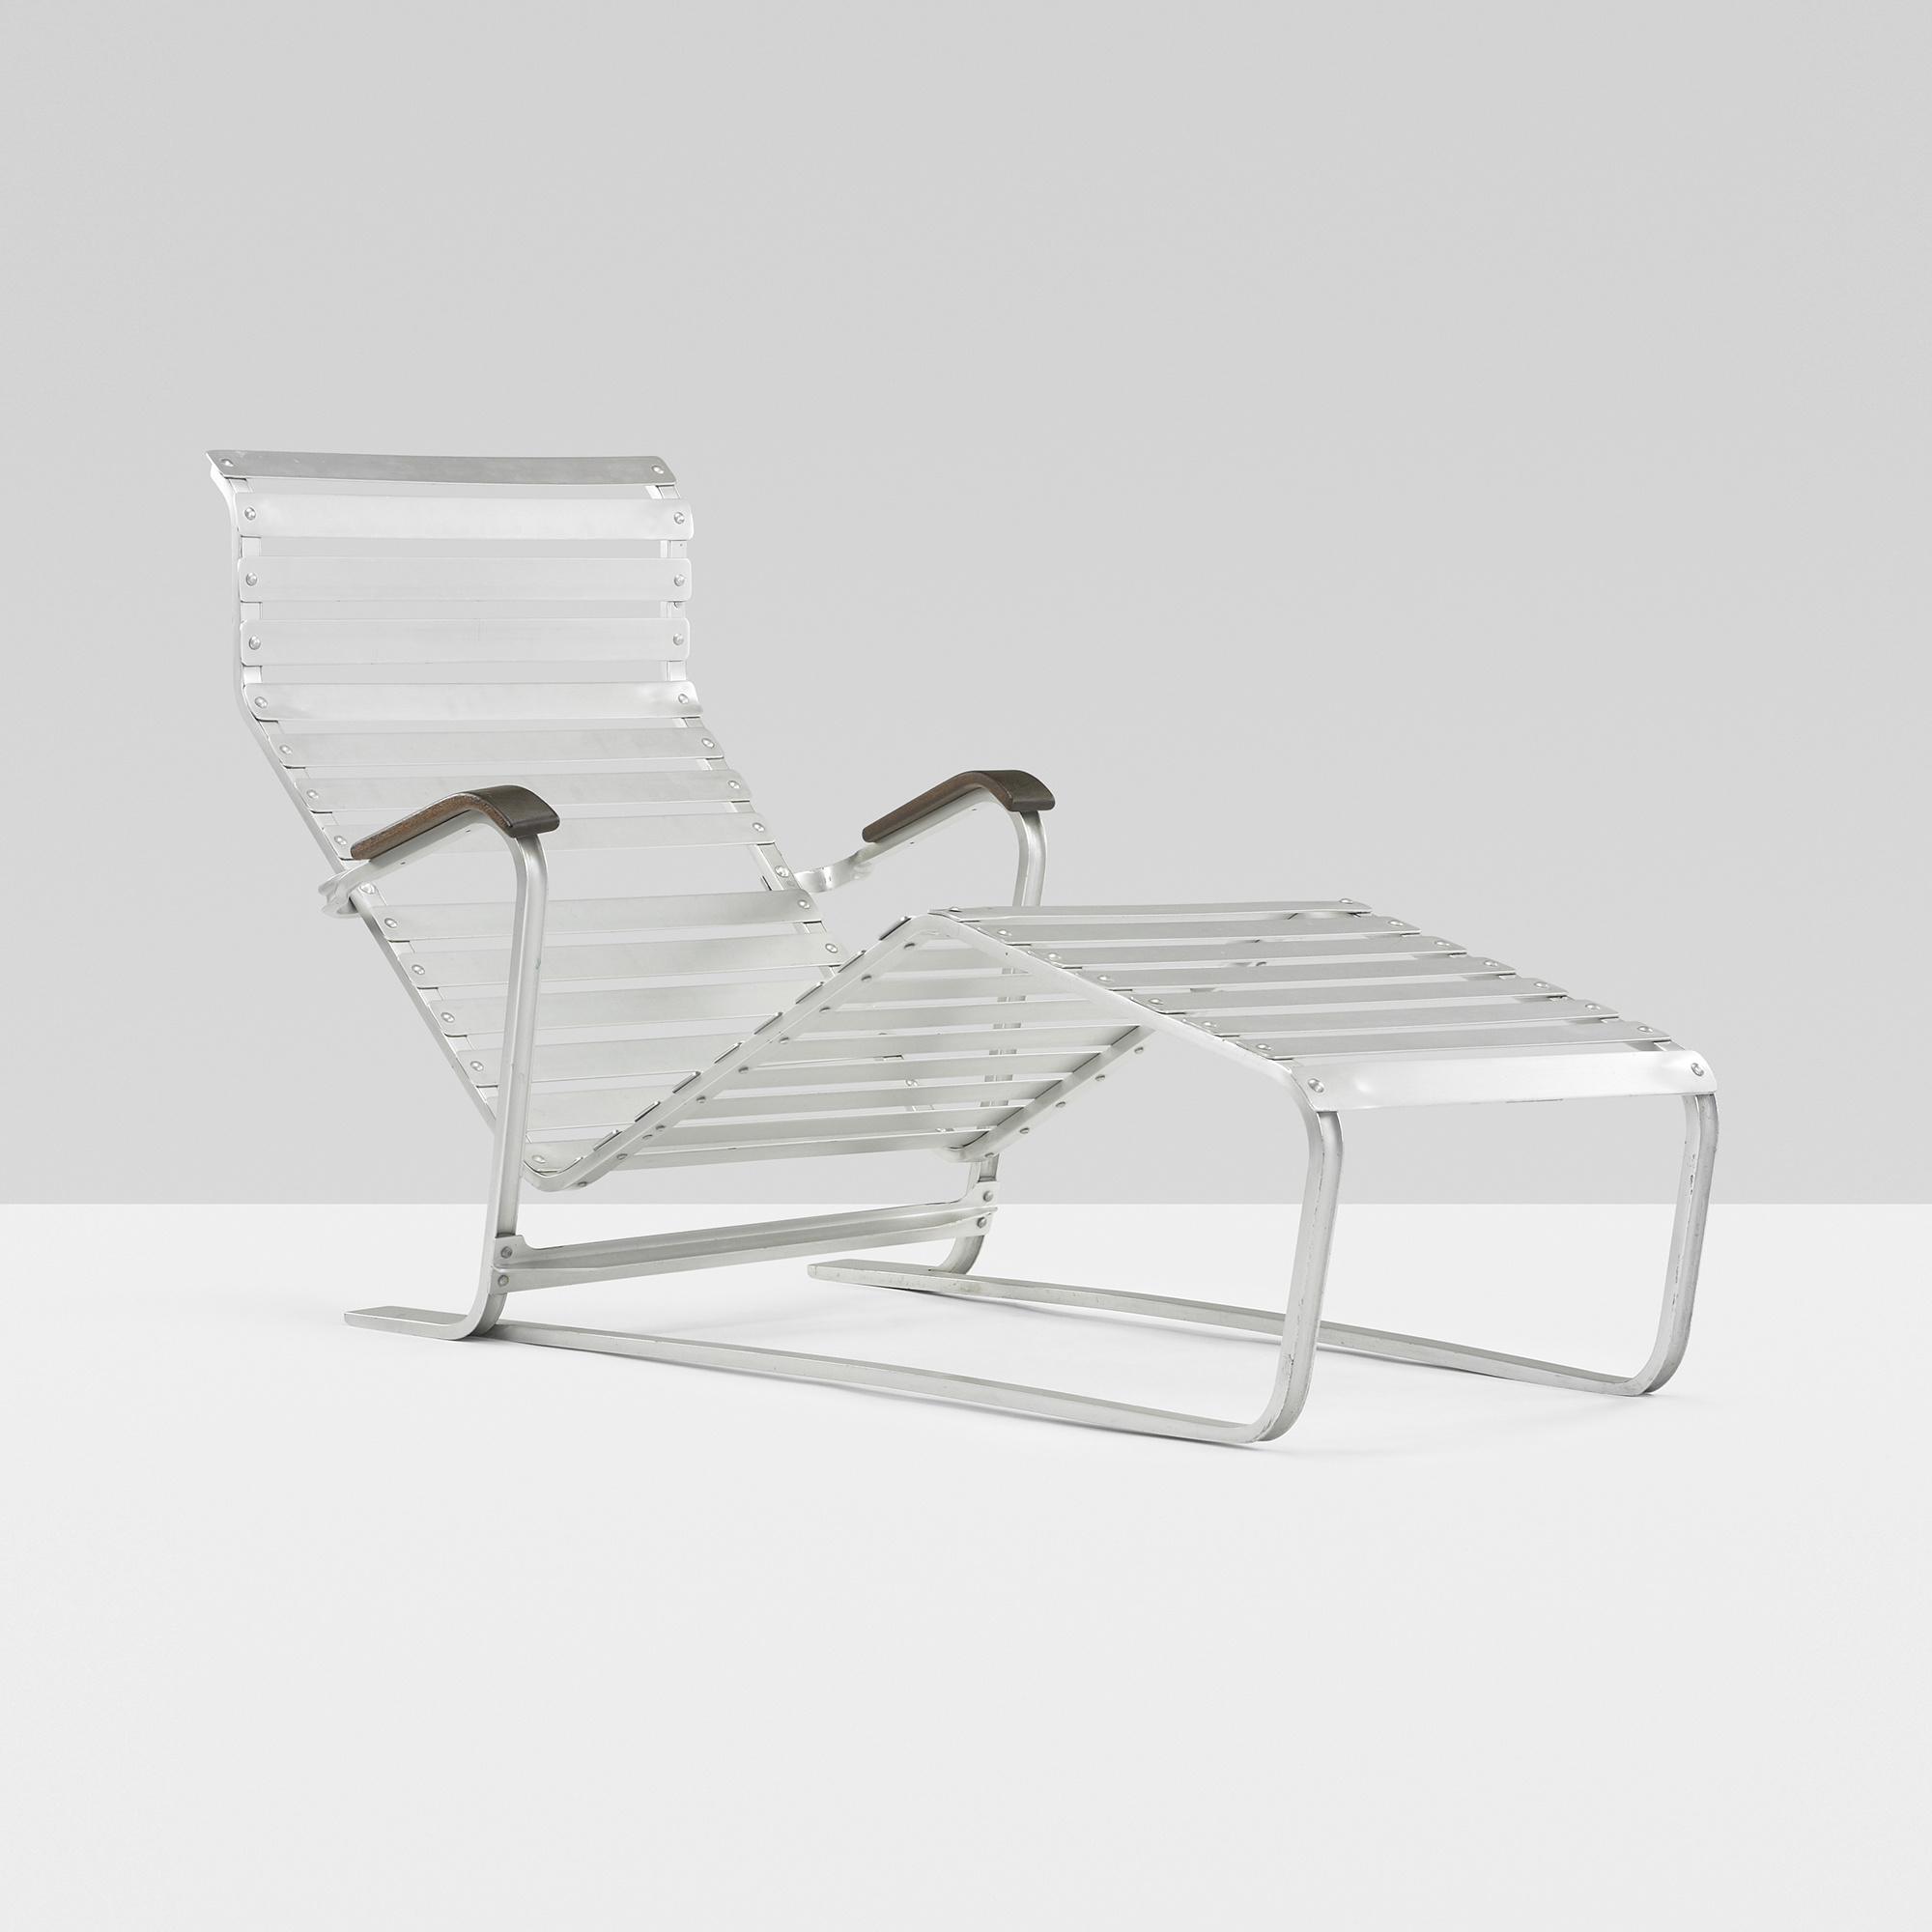 282 marcel breuer chaise lounge model 313 for Chaise modele